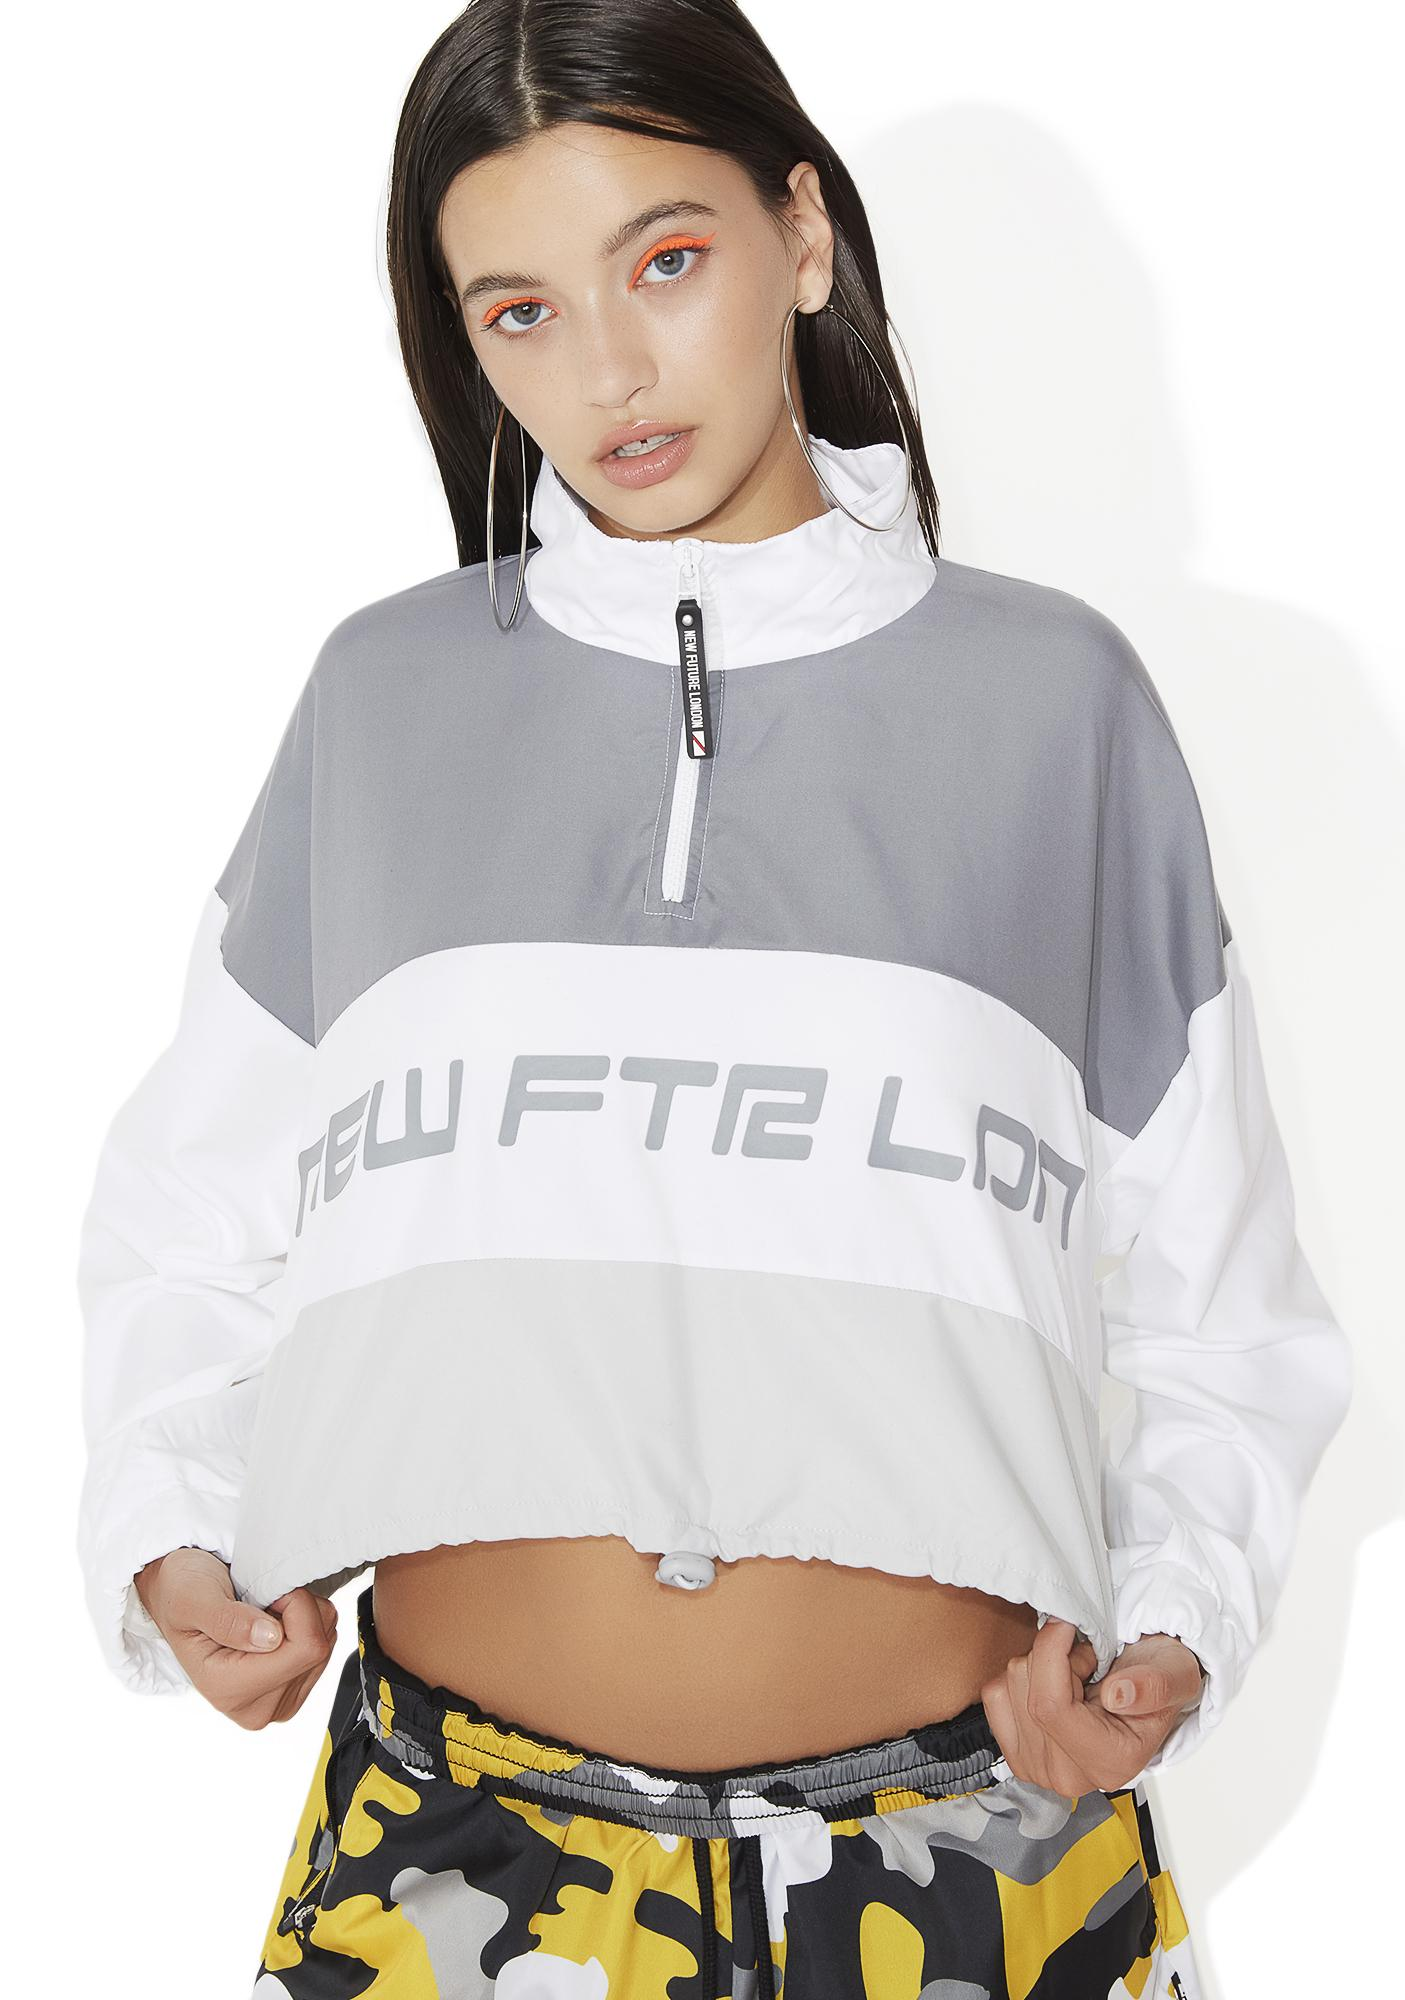 NEW FTR LDN Racer Logo Cropped Windbreaker